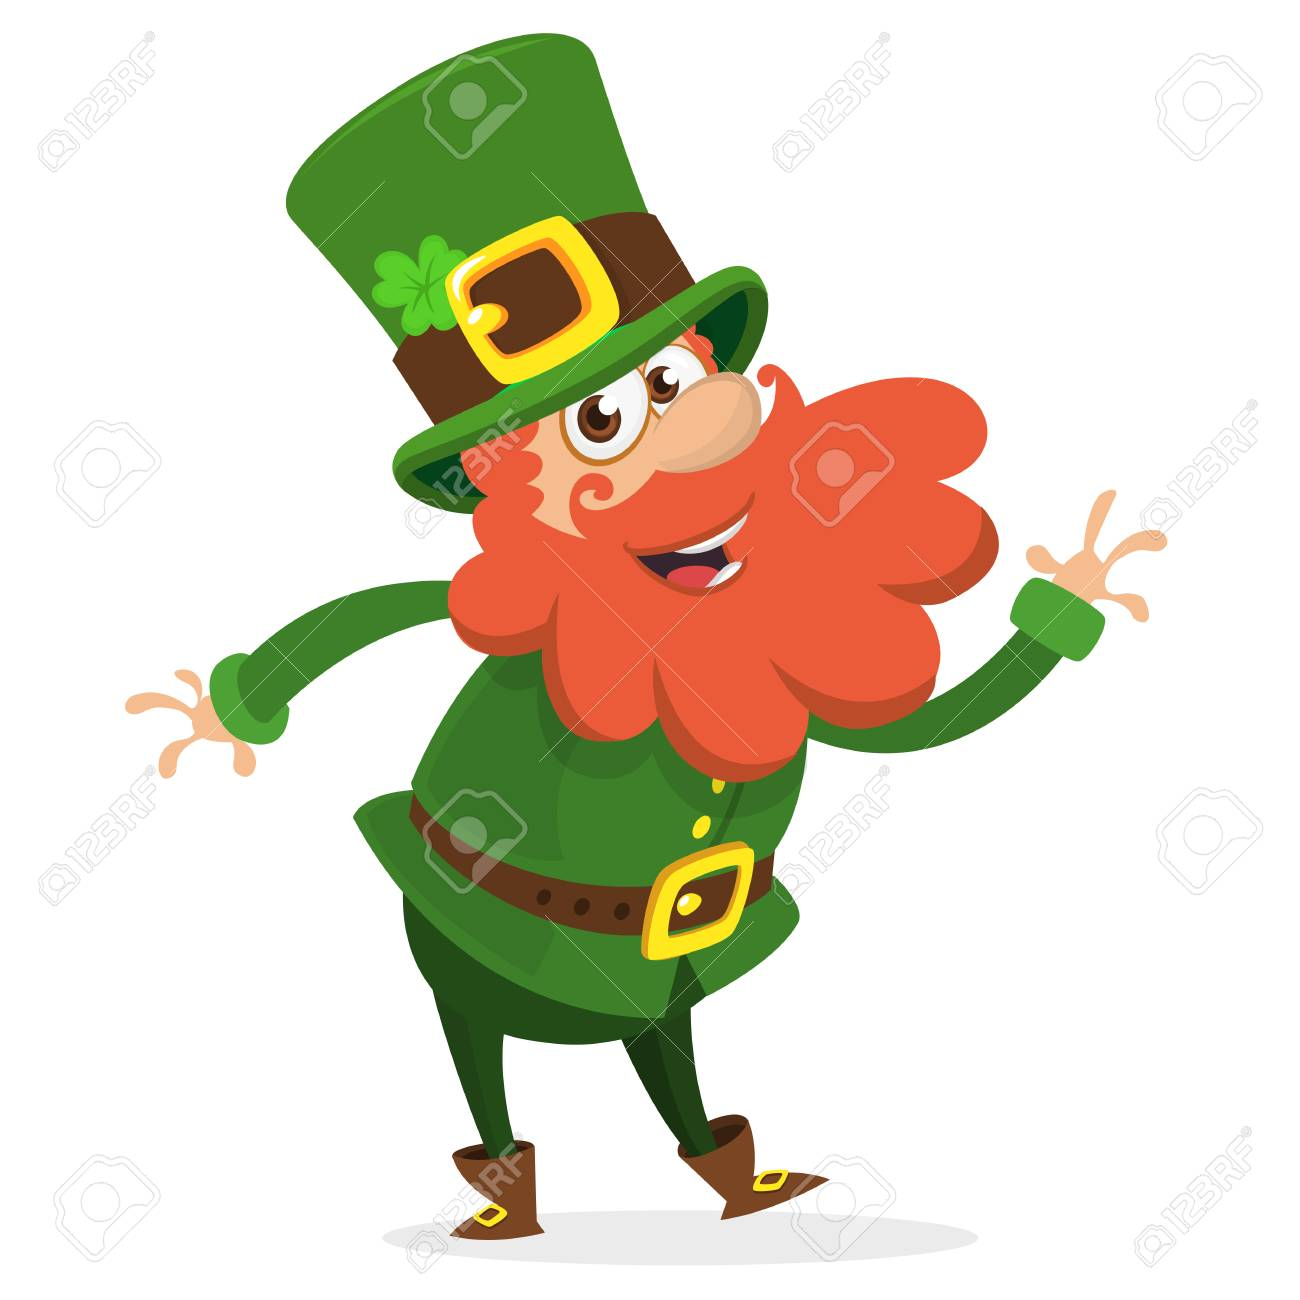 Dancing leprechaun cartoon vector illustration..